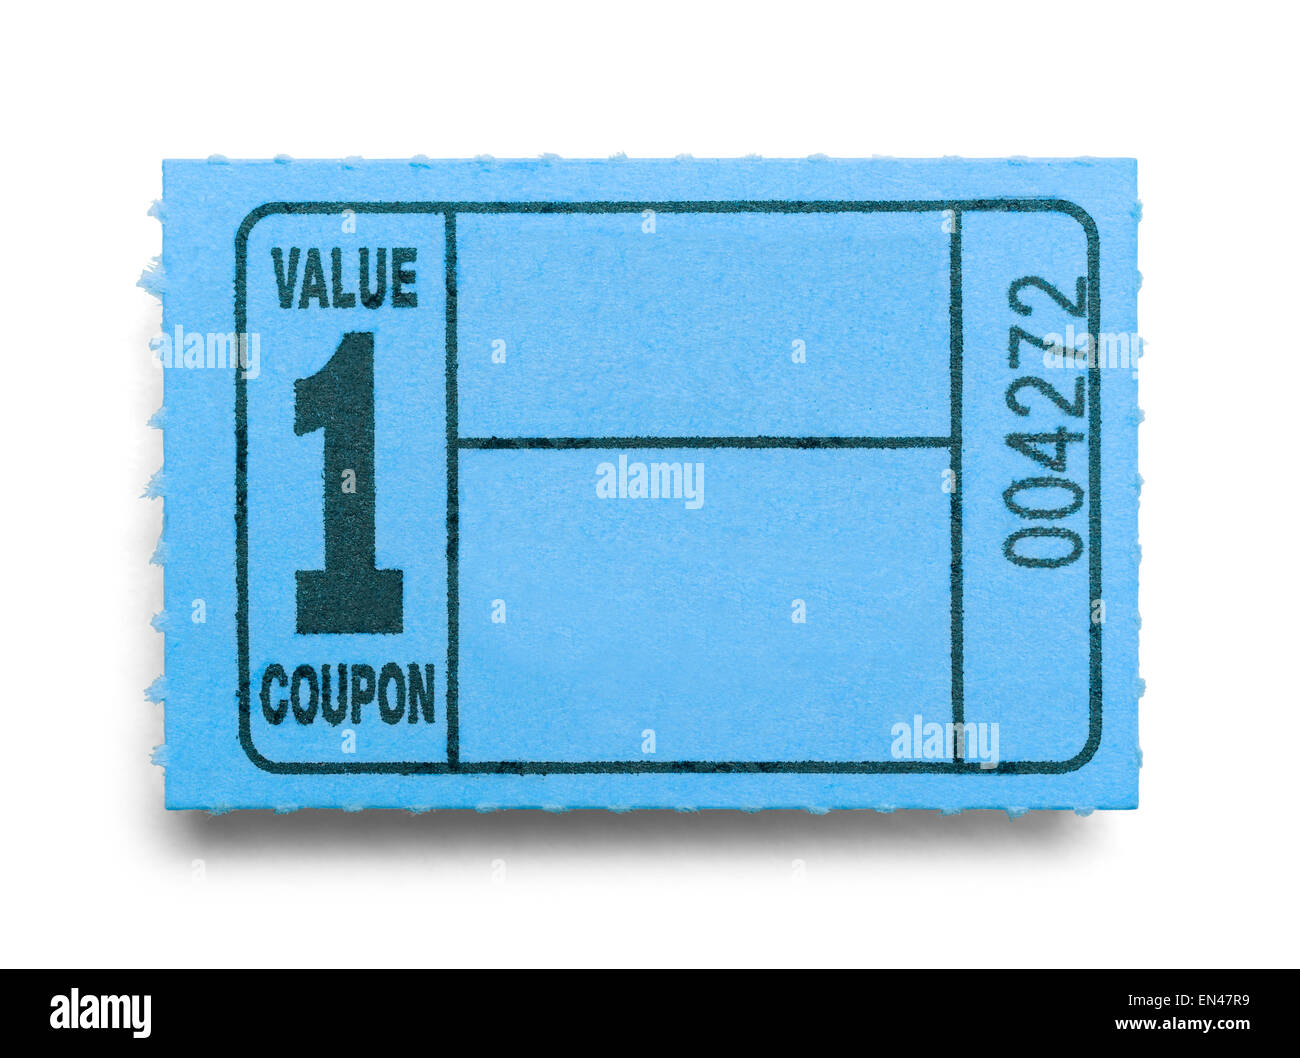 Small Blue Coupon Ticket Isolated on a White Background. - Stock Image